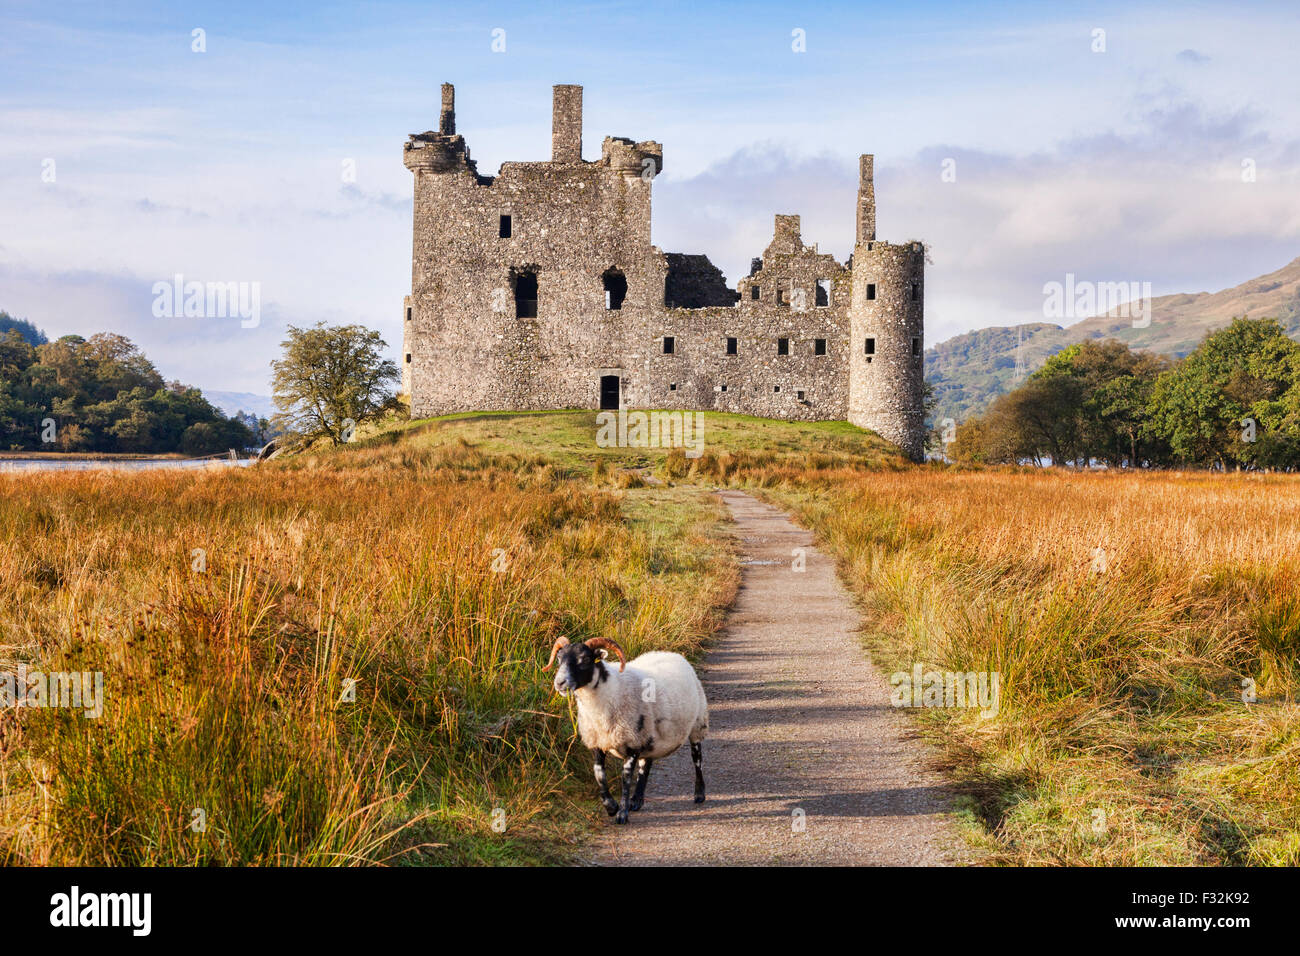 Kilchurn Castle, the path leading to it and a Scottish Blackface ram, Loch Awe, Argyll and Bute, Scotland, UK. Stock Photo